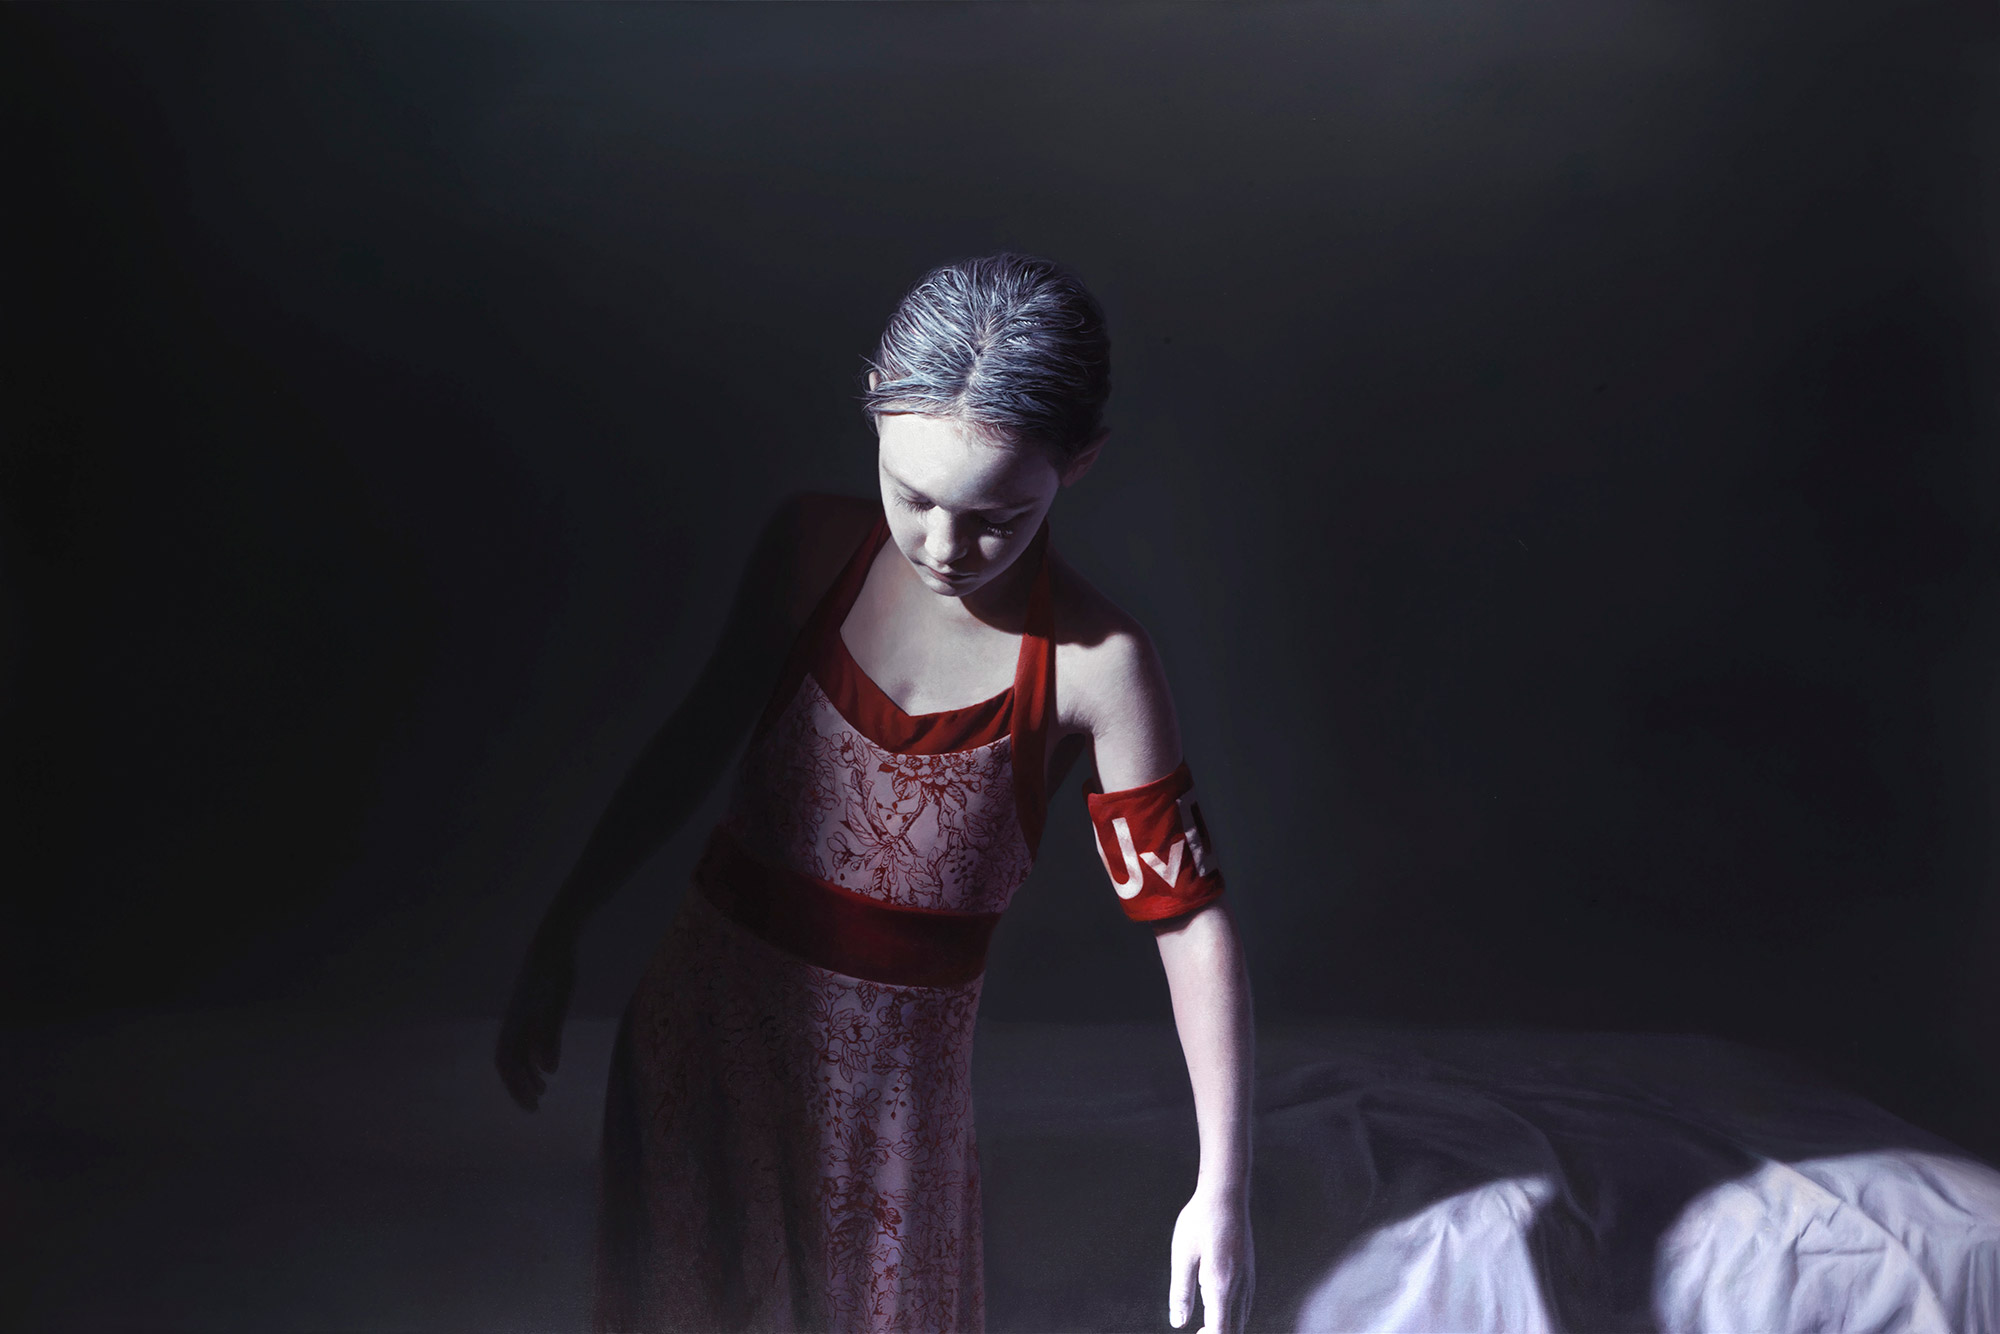 Gottfried Helnwein - The Murmur of the Innocents 24